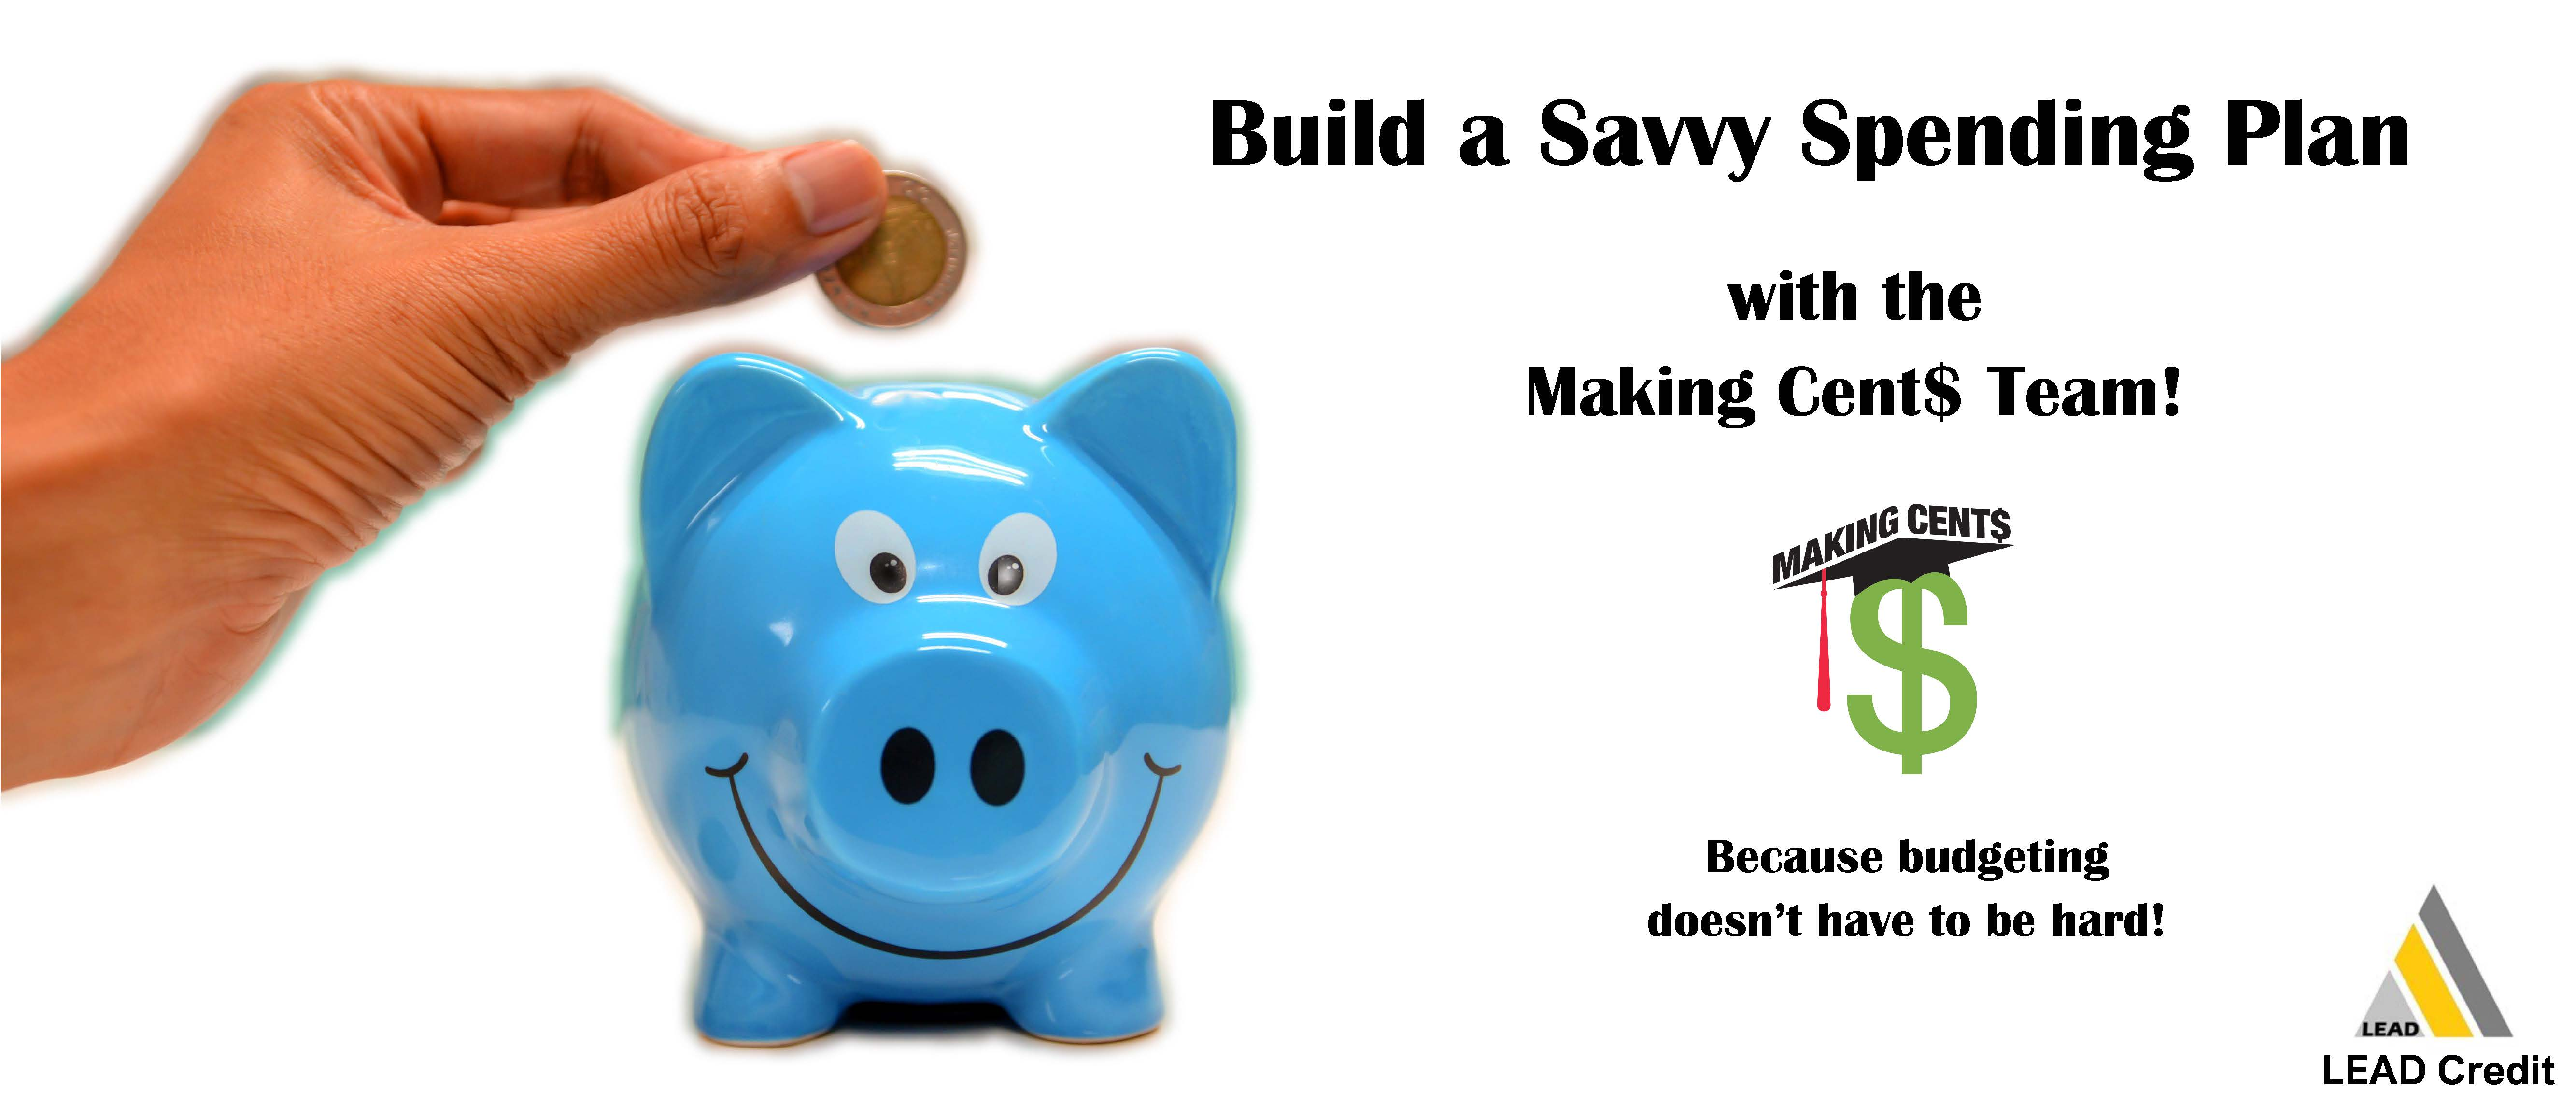 Hand with blue smiling piggy bank and the words Build a Savvy Spending Plan with the Making Cent$ Team, because budgeting doesn't have to be hard. Also has making cents logo & LEAD logo